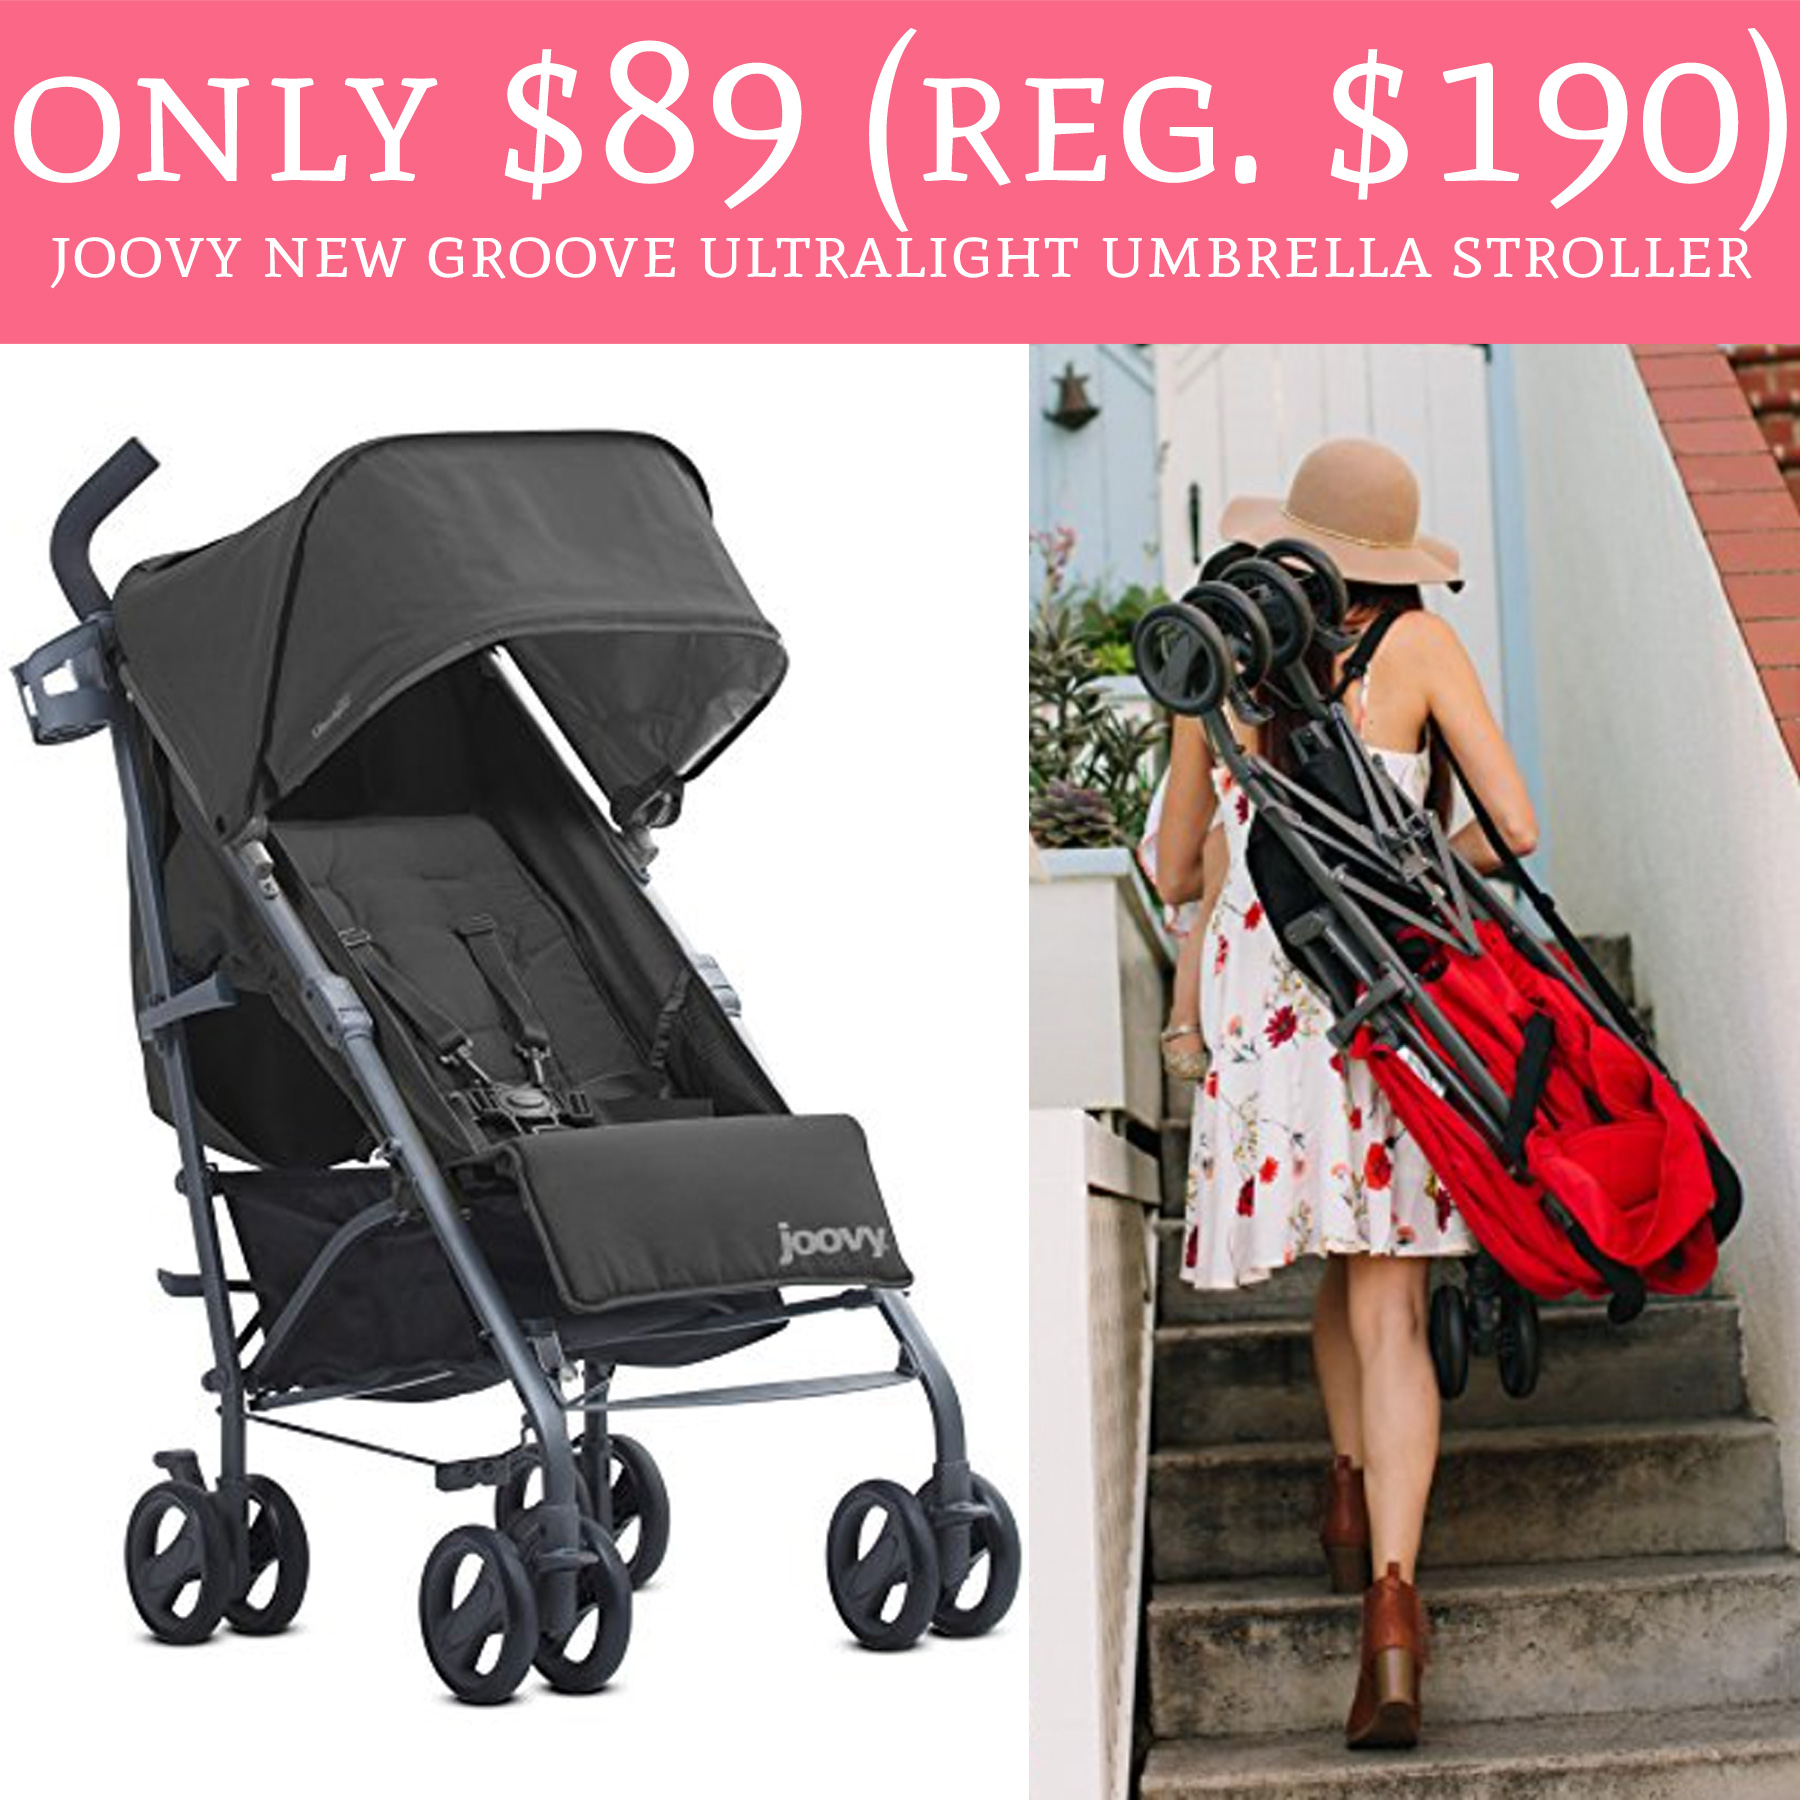 Need a new stroller Hop over to Amazon to score Joovy New Groove Ultralight Umbrella